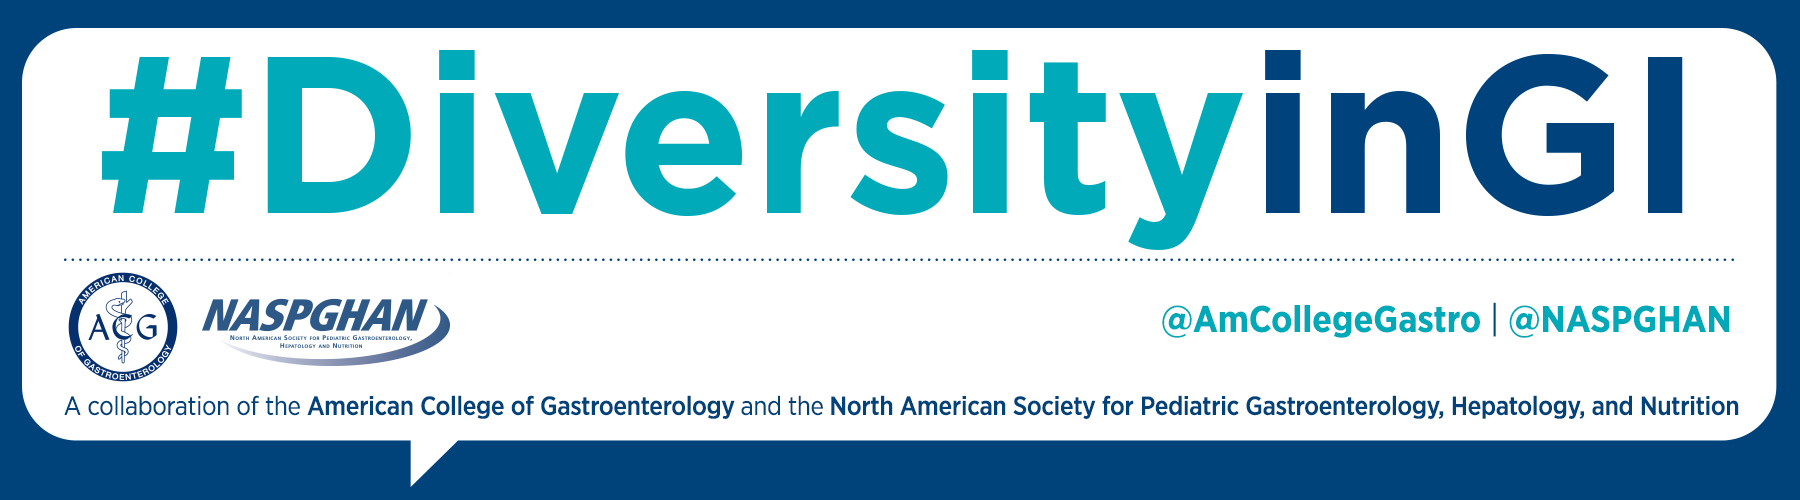 DiversityinGI - ACG and NASPGHAN Join Forces - American